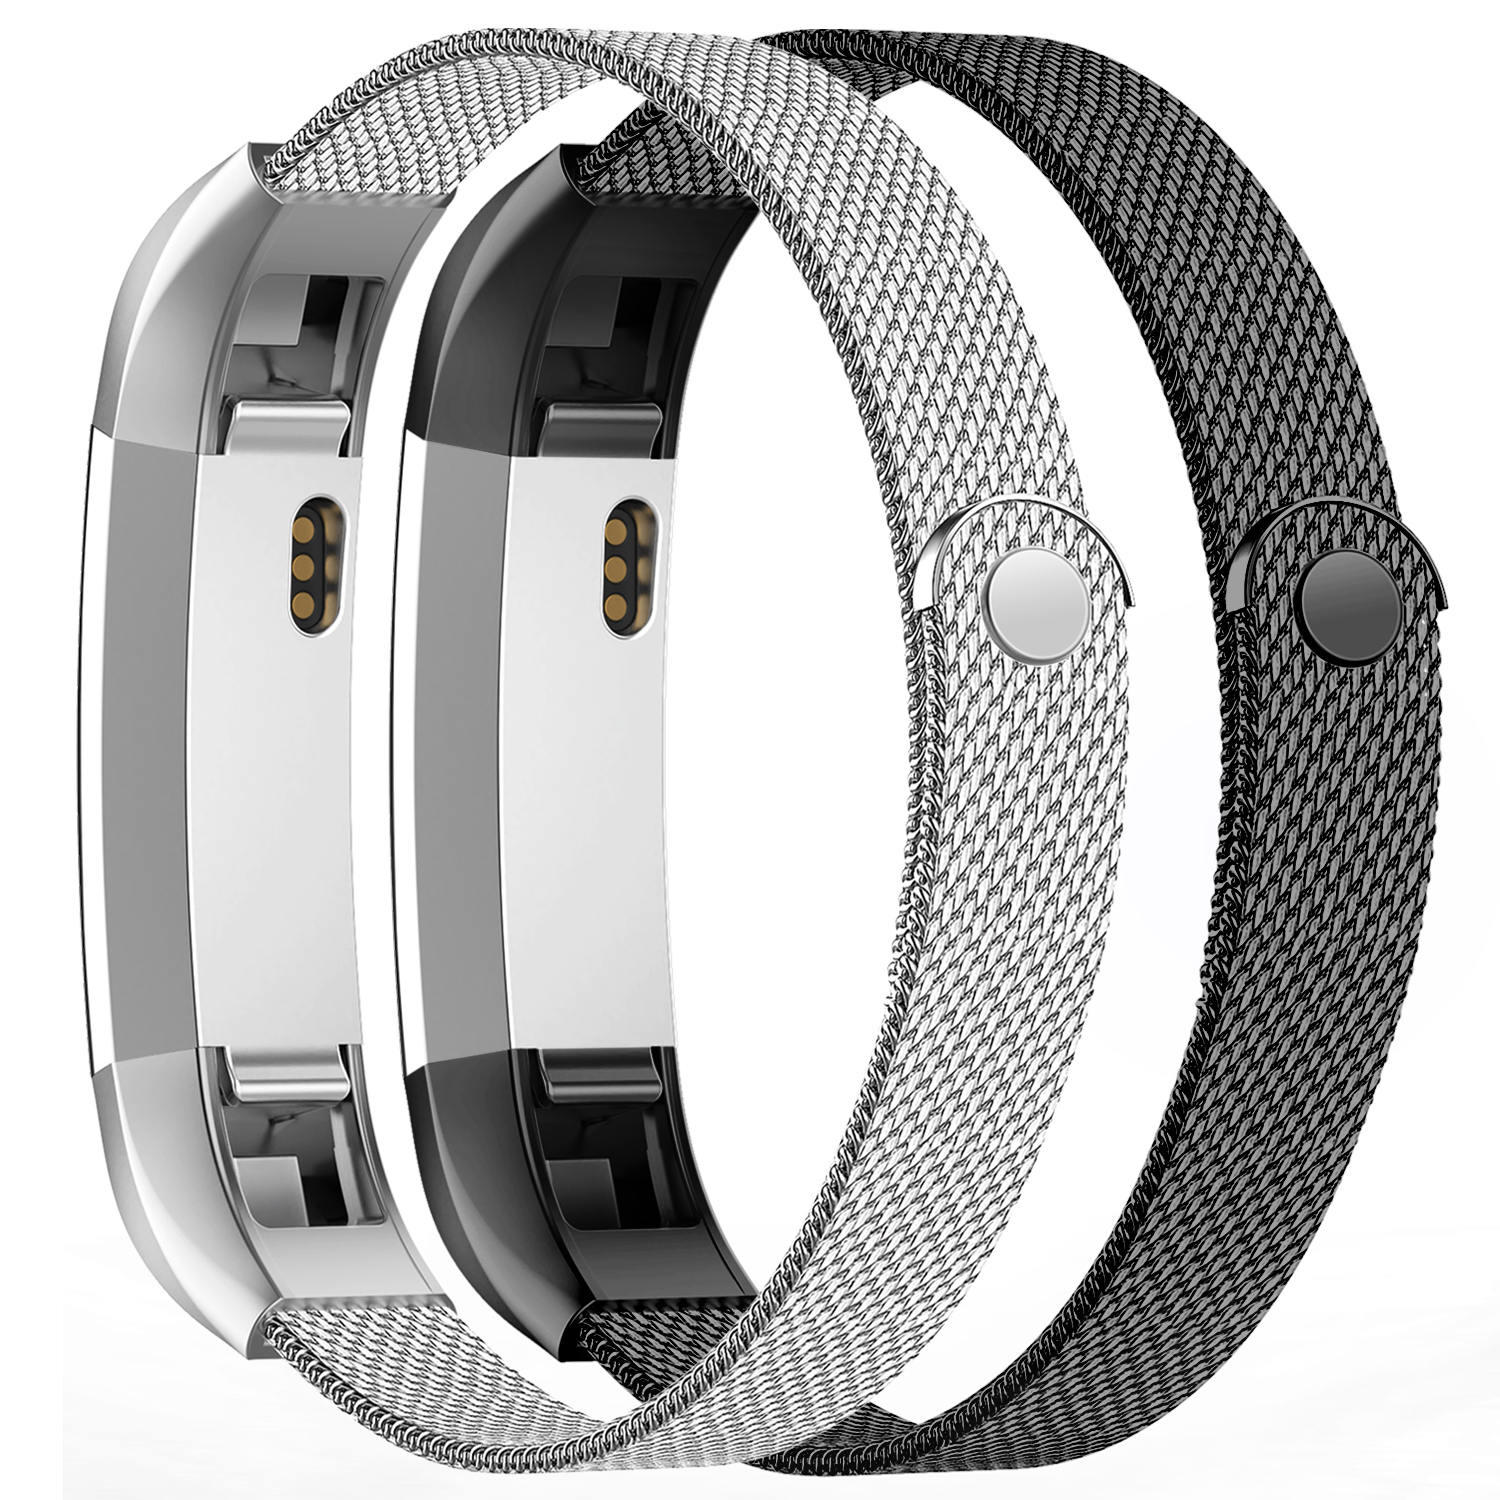 iGK Replacement Compatible for Fitbit Alta Band and Fitbit Alta HR Bands, Stainless Steel Metal Bracelet Strap with Unique Magnet Clasp for Women Men Black+Sliver 2Pack Small